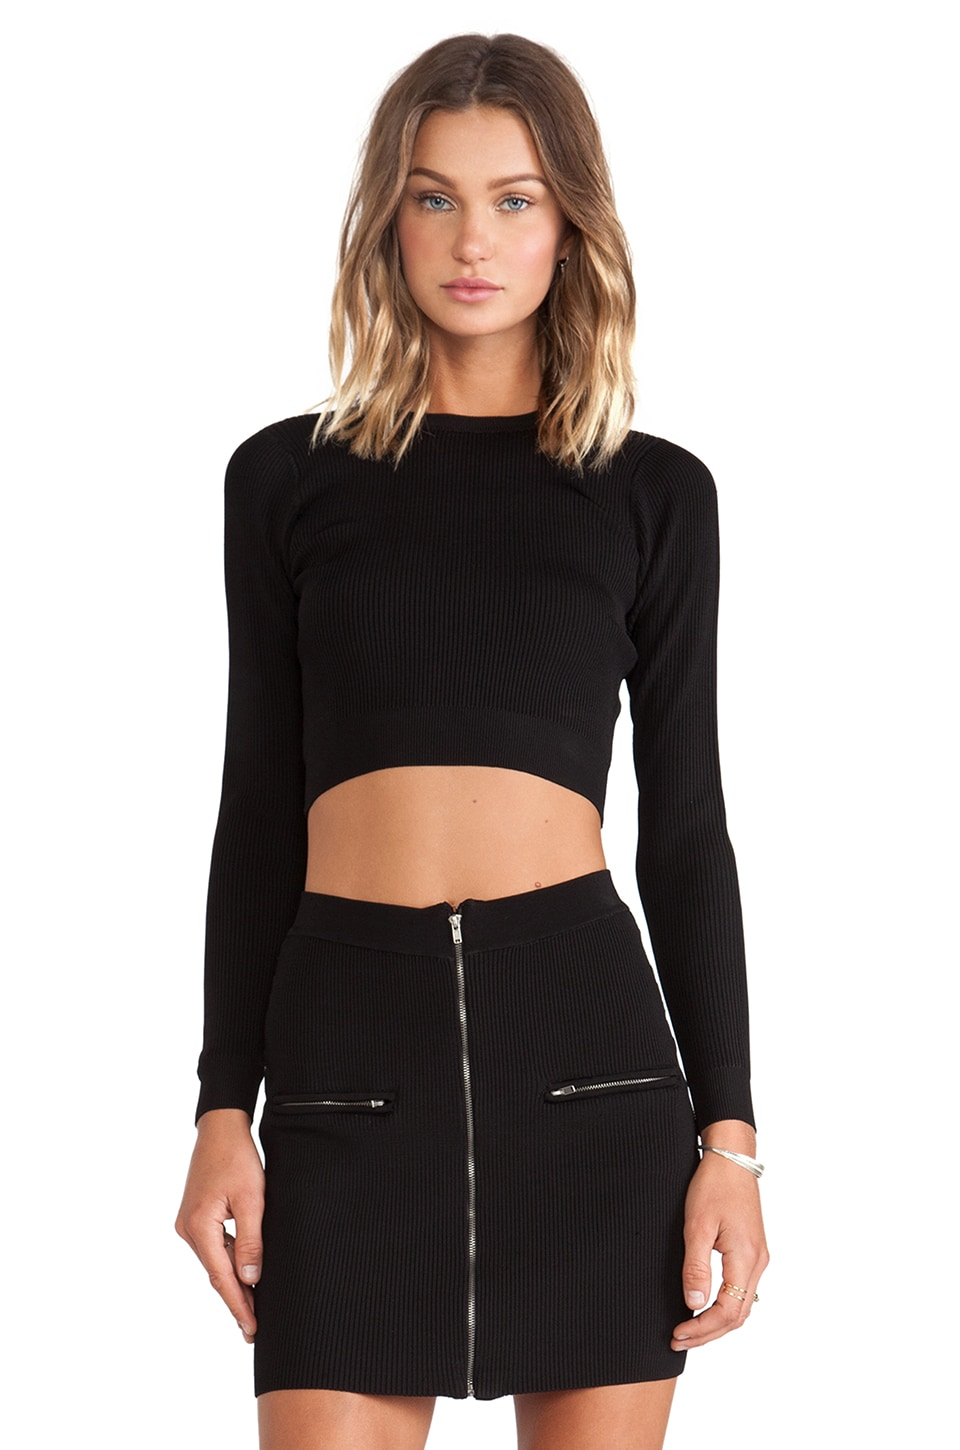 MLV Marbella Rib Crop Top in Black